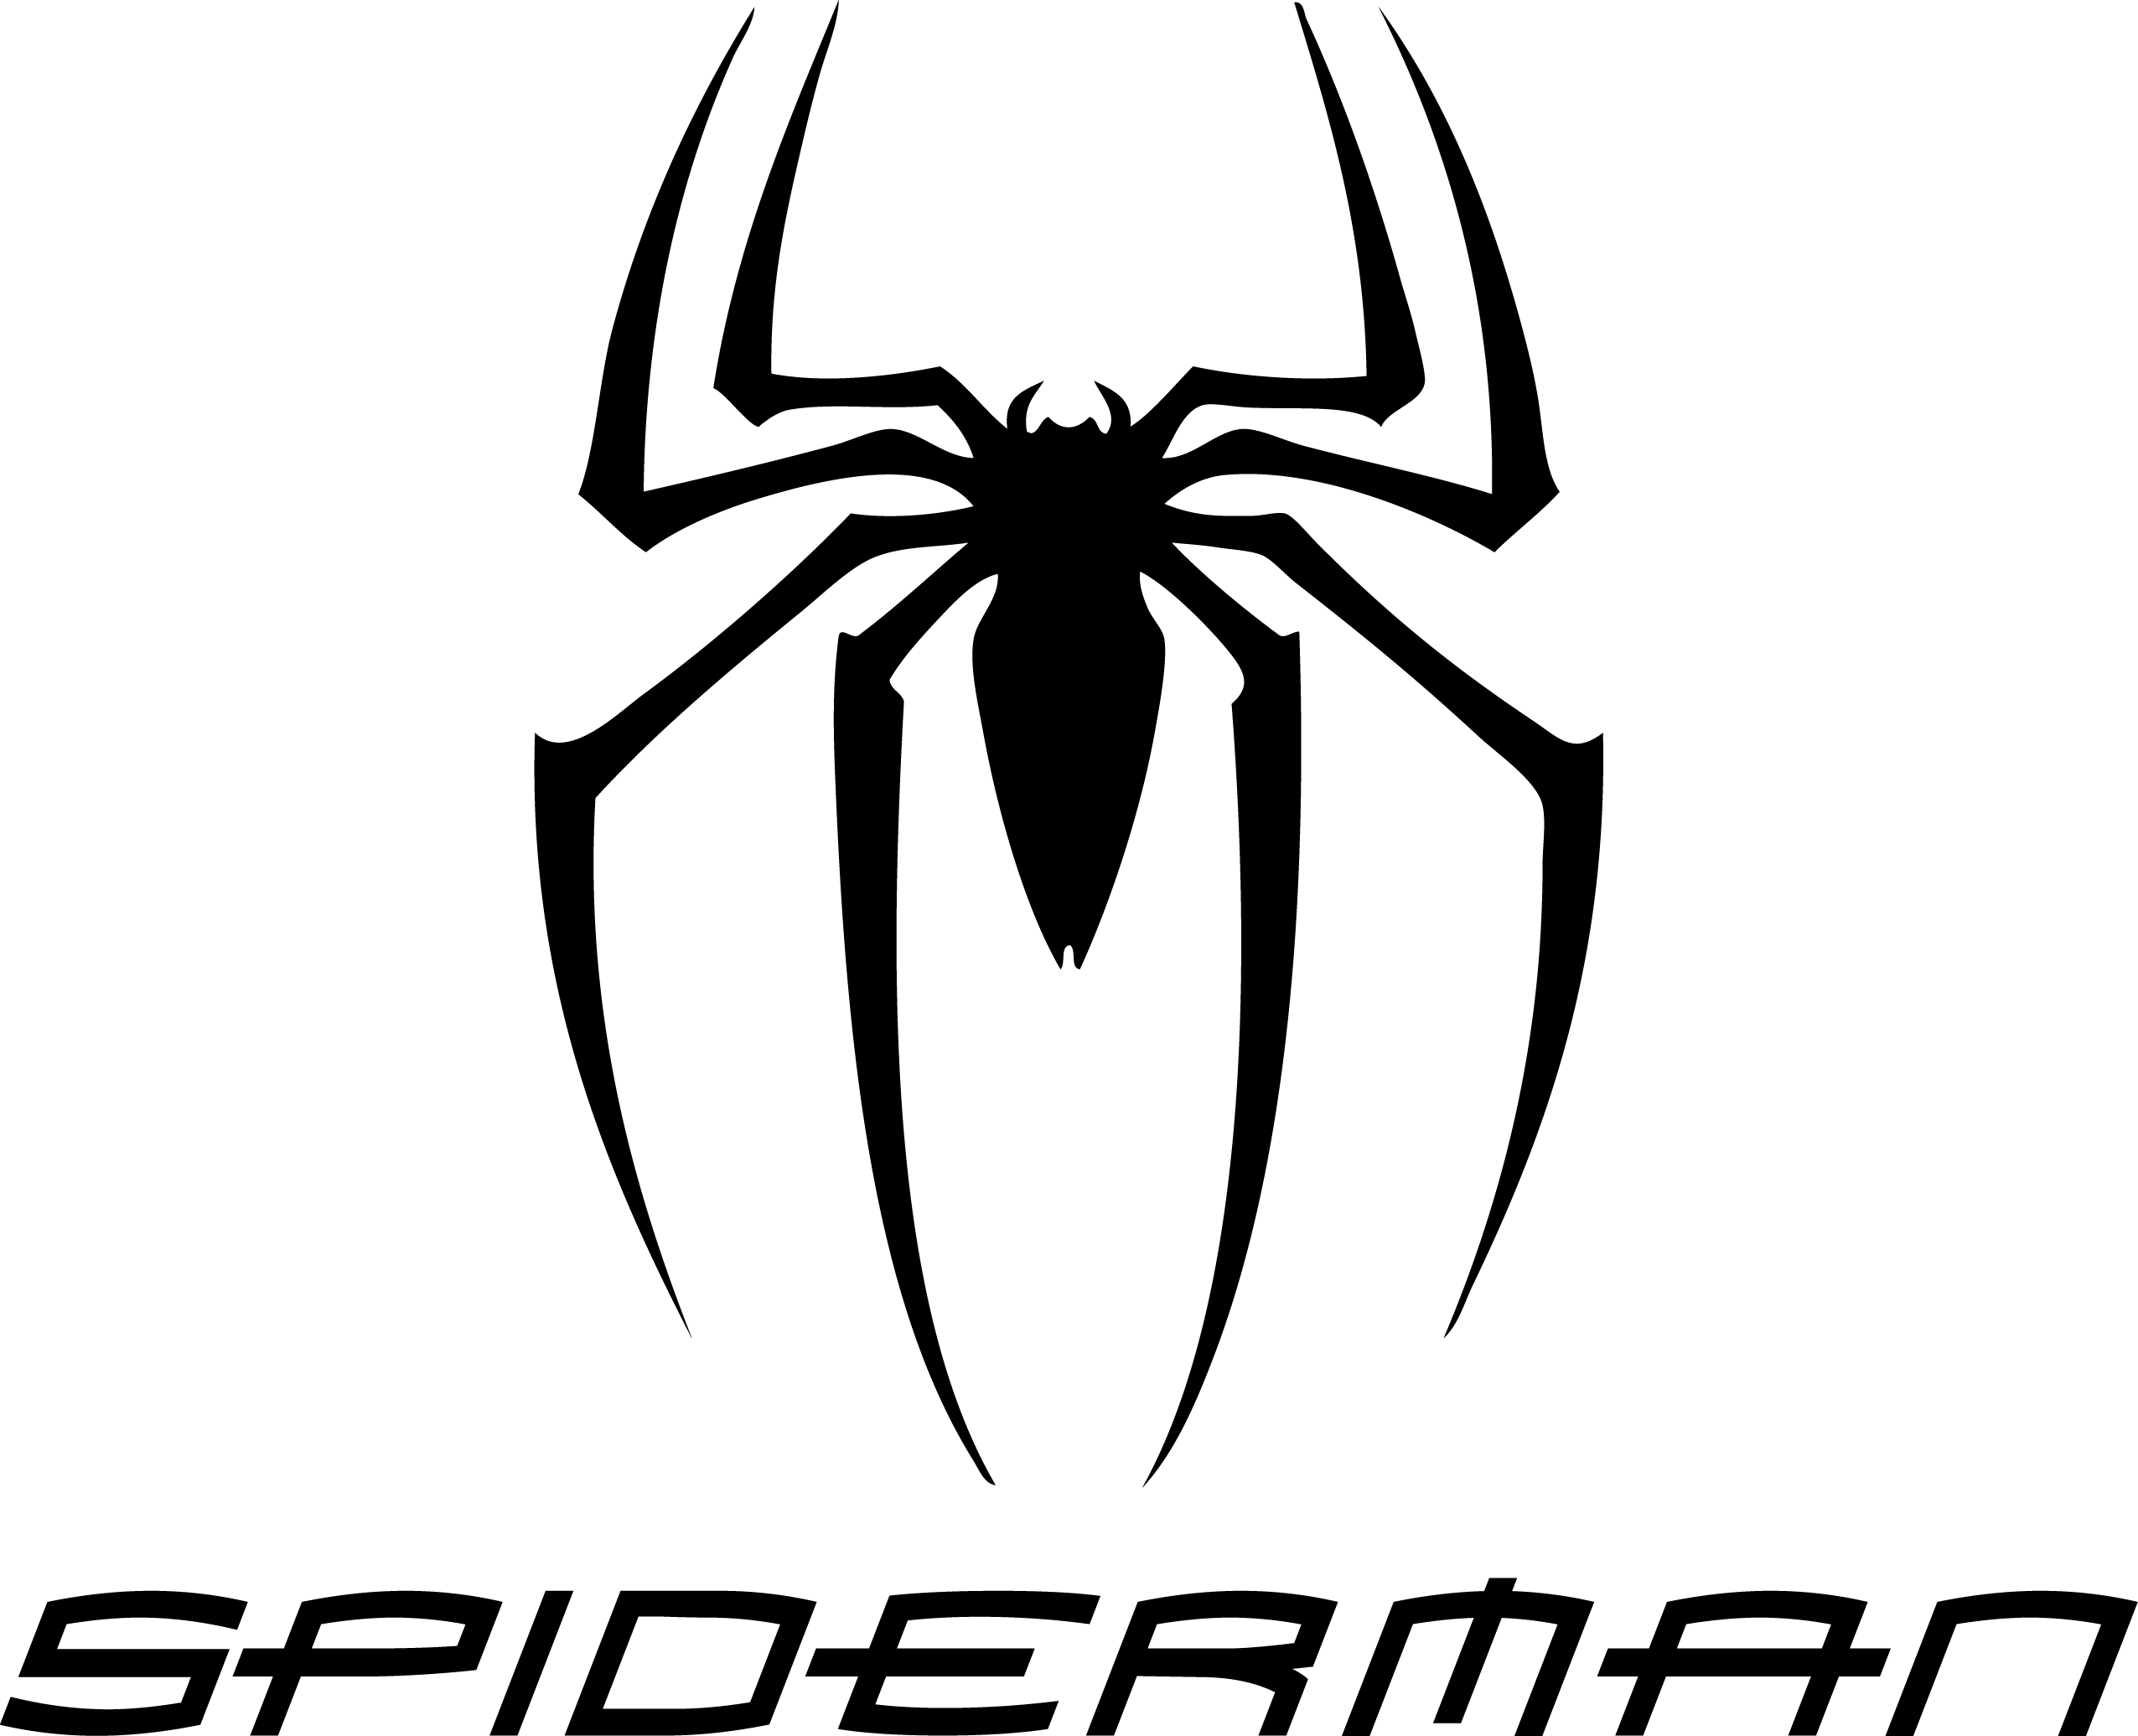 Spiderman logo png. Transparent images pluspng spidermanlogo